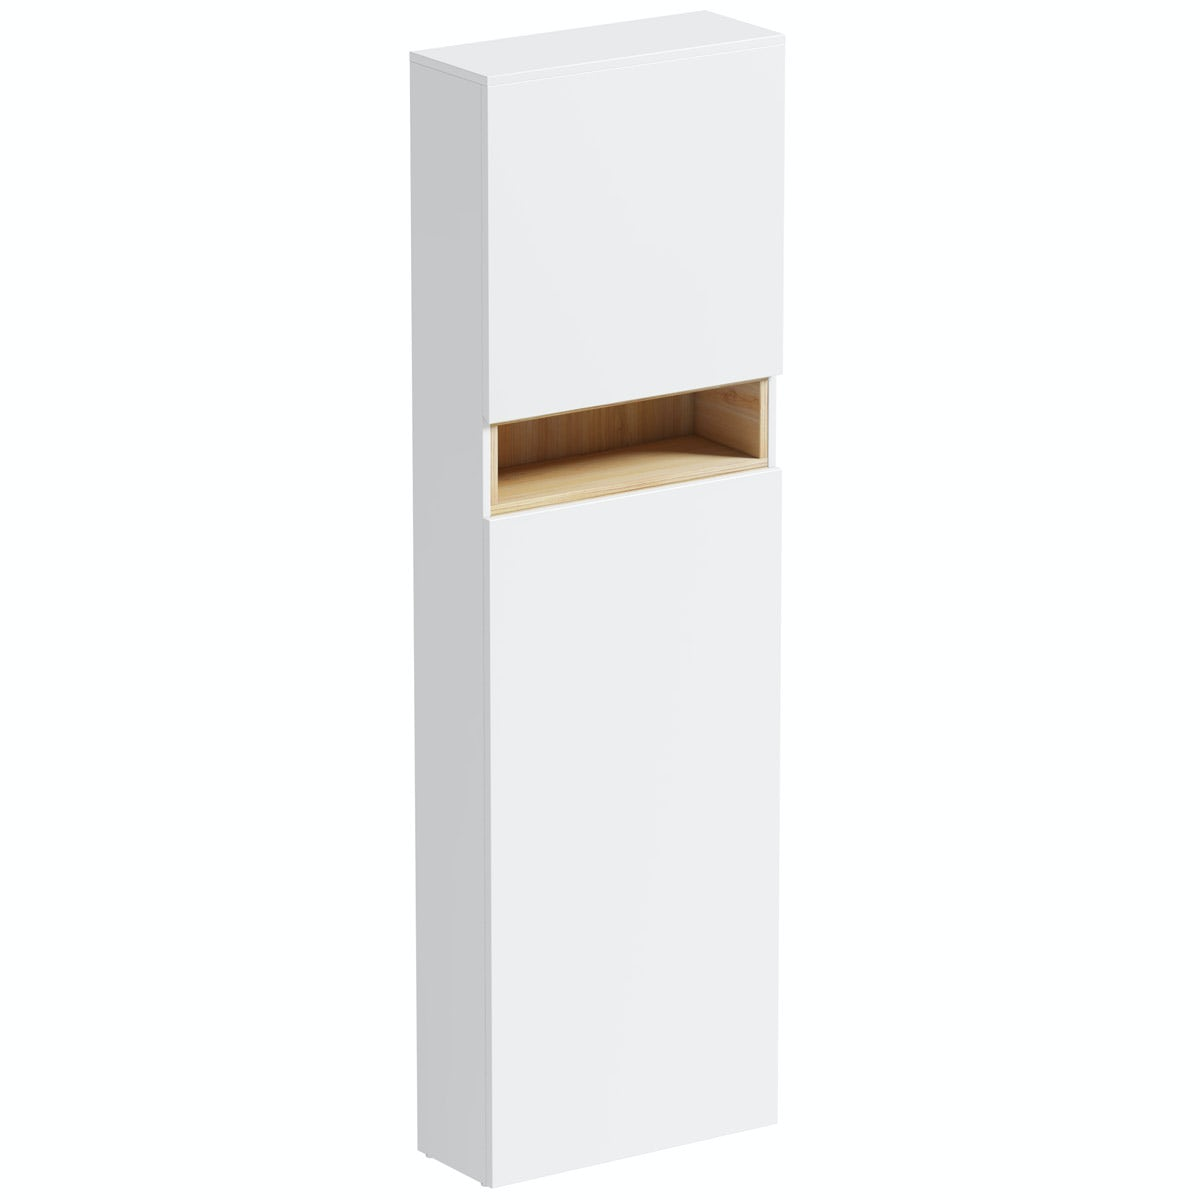 Mode Tate white & oak tall toilet unit